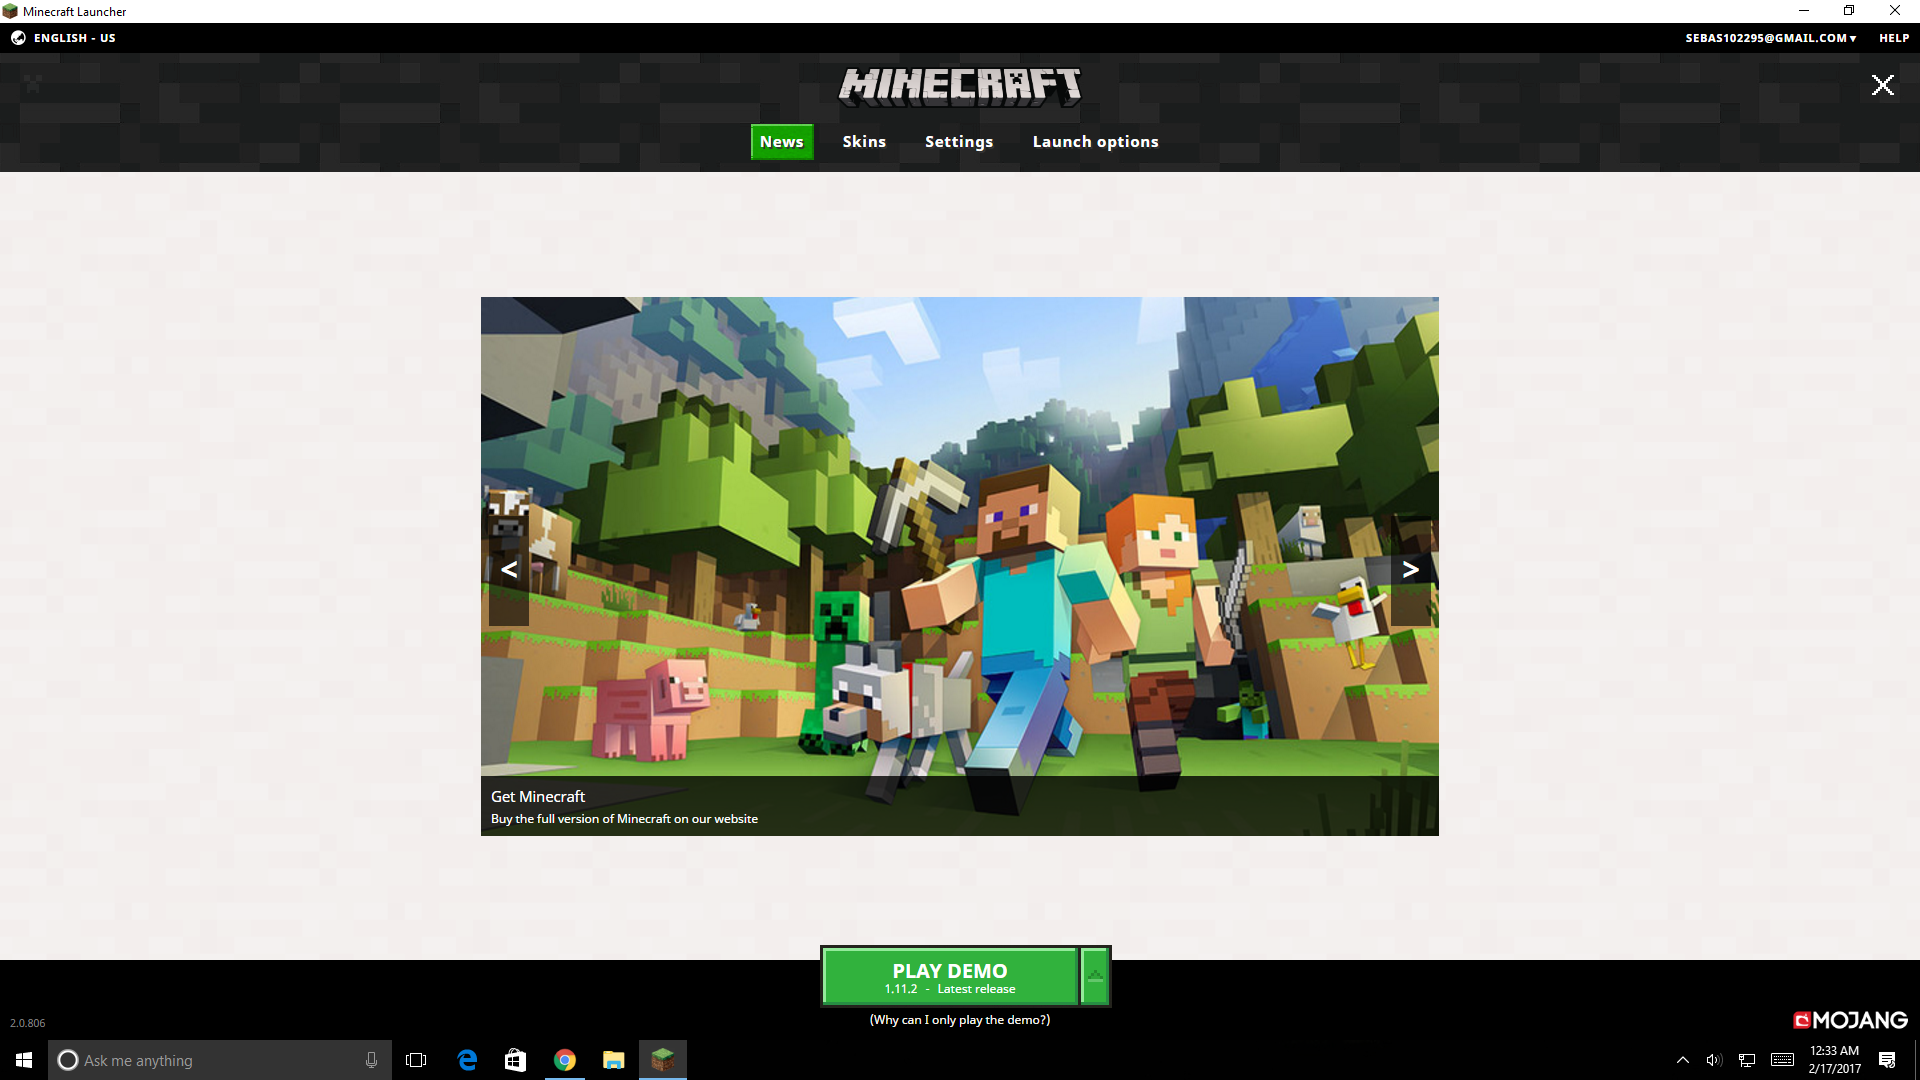 i bought minecraft and it says play demo